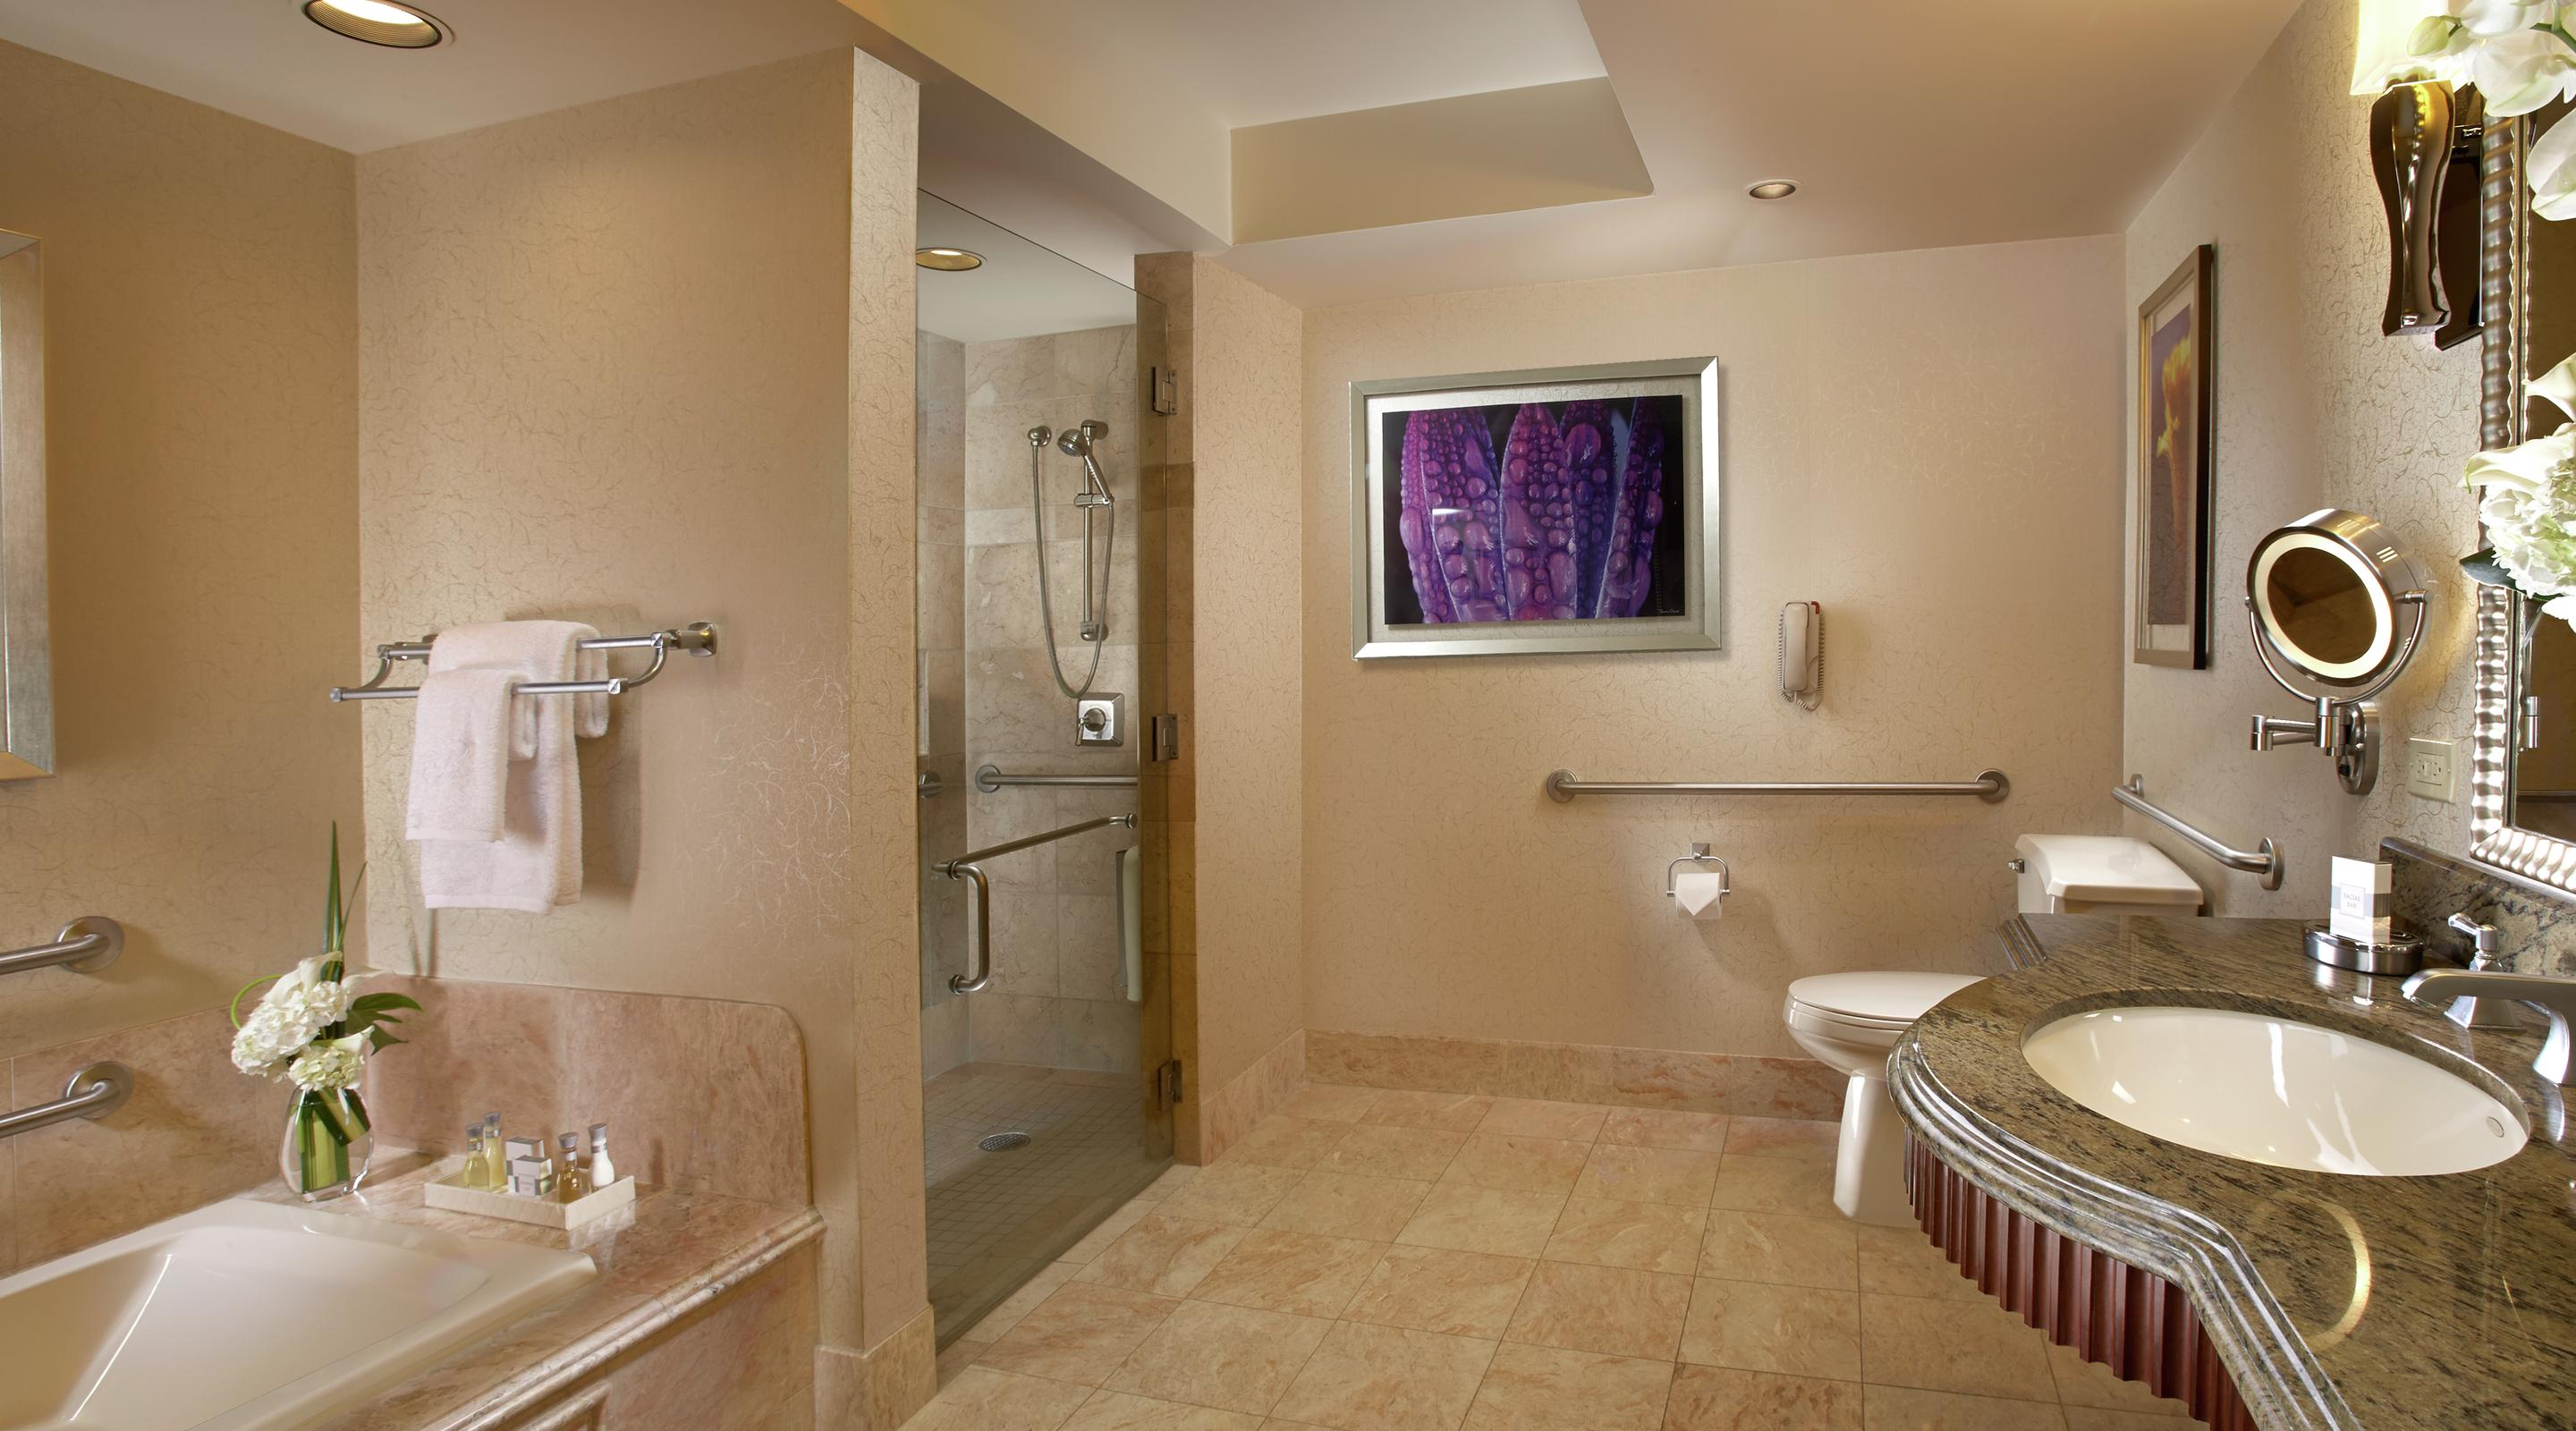 The ADA accessible bathroom in a king resort room at Bellagio.